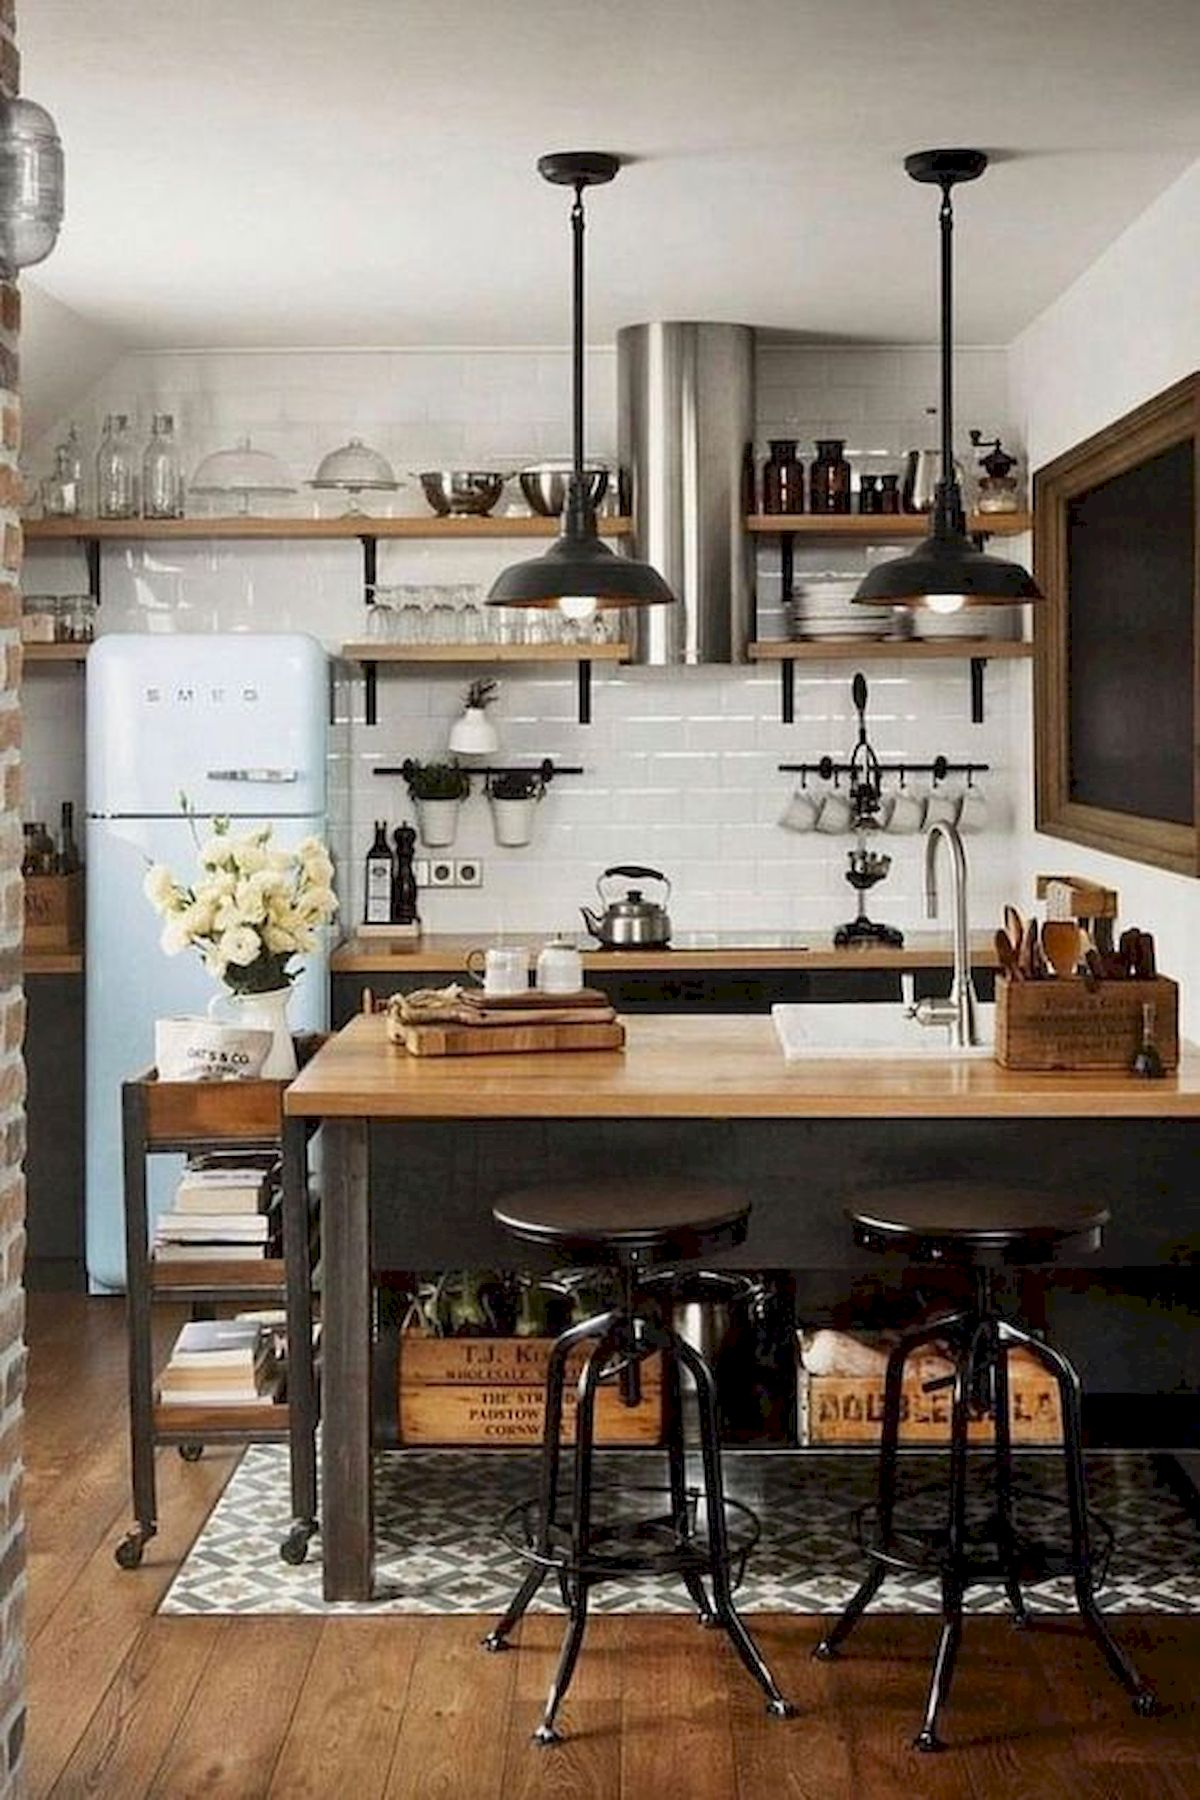 30 Awesome Small Apartment Design and Decor Ideas With Farmhouse Styles (7)